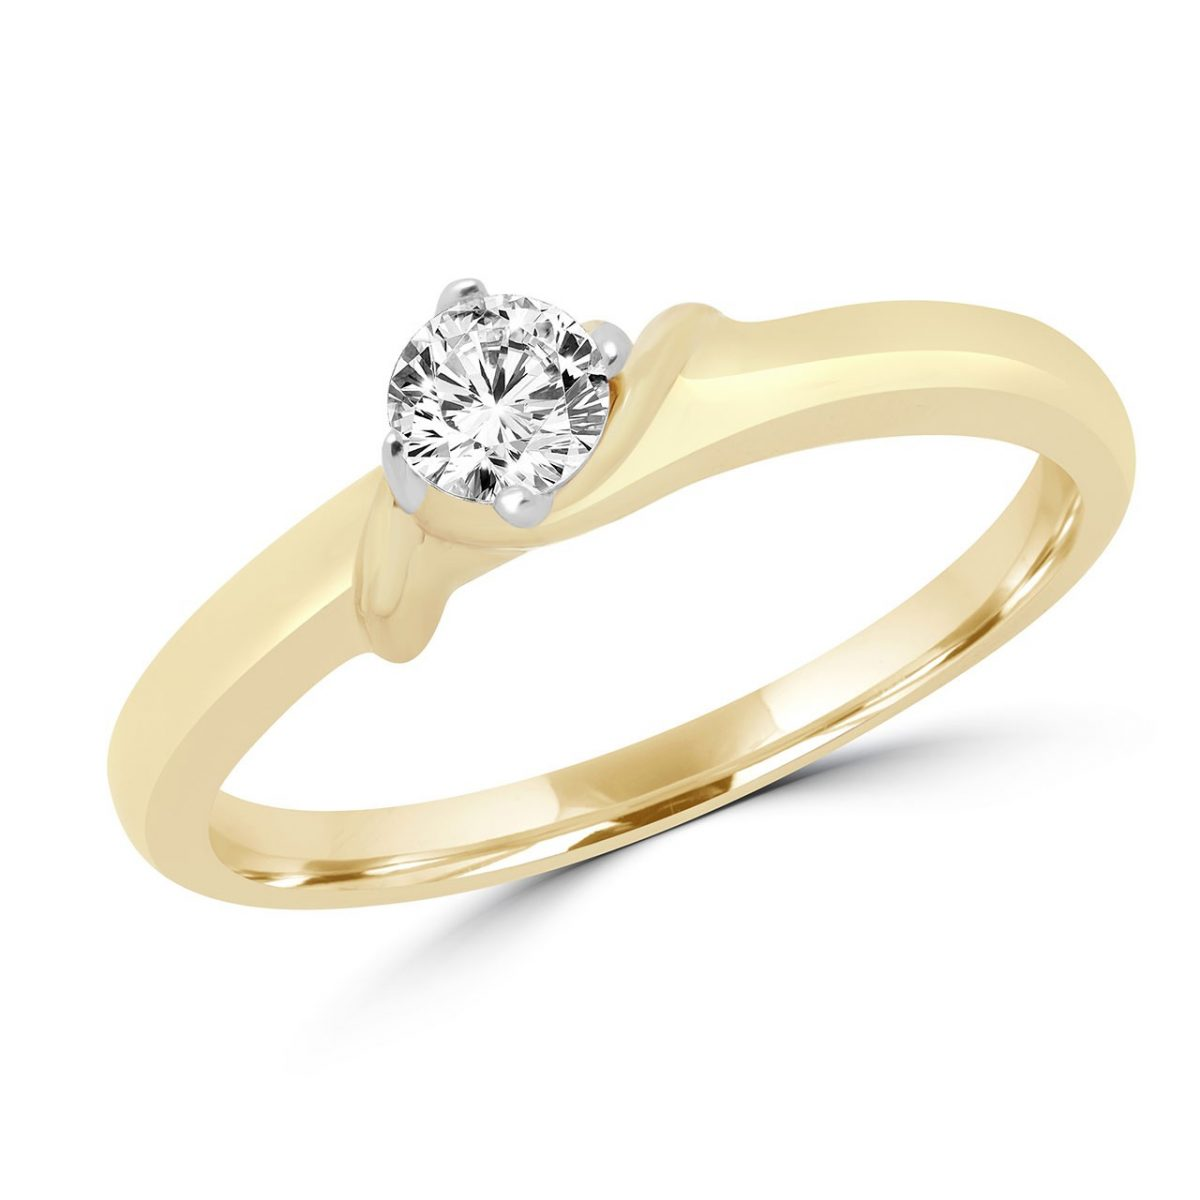 Fabulous Round Diamond Solitaire Engagement Ring In 14k